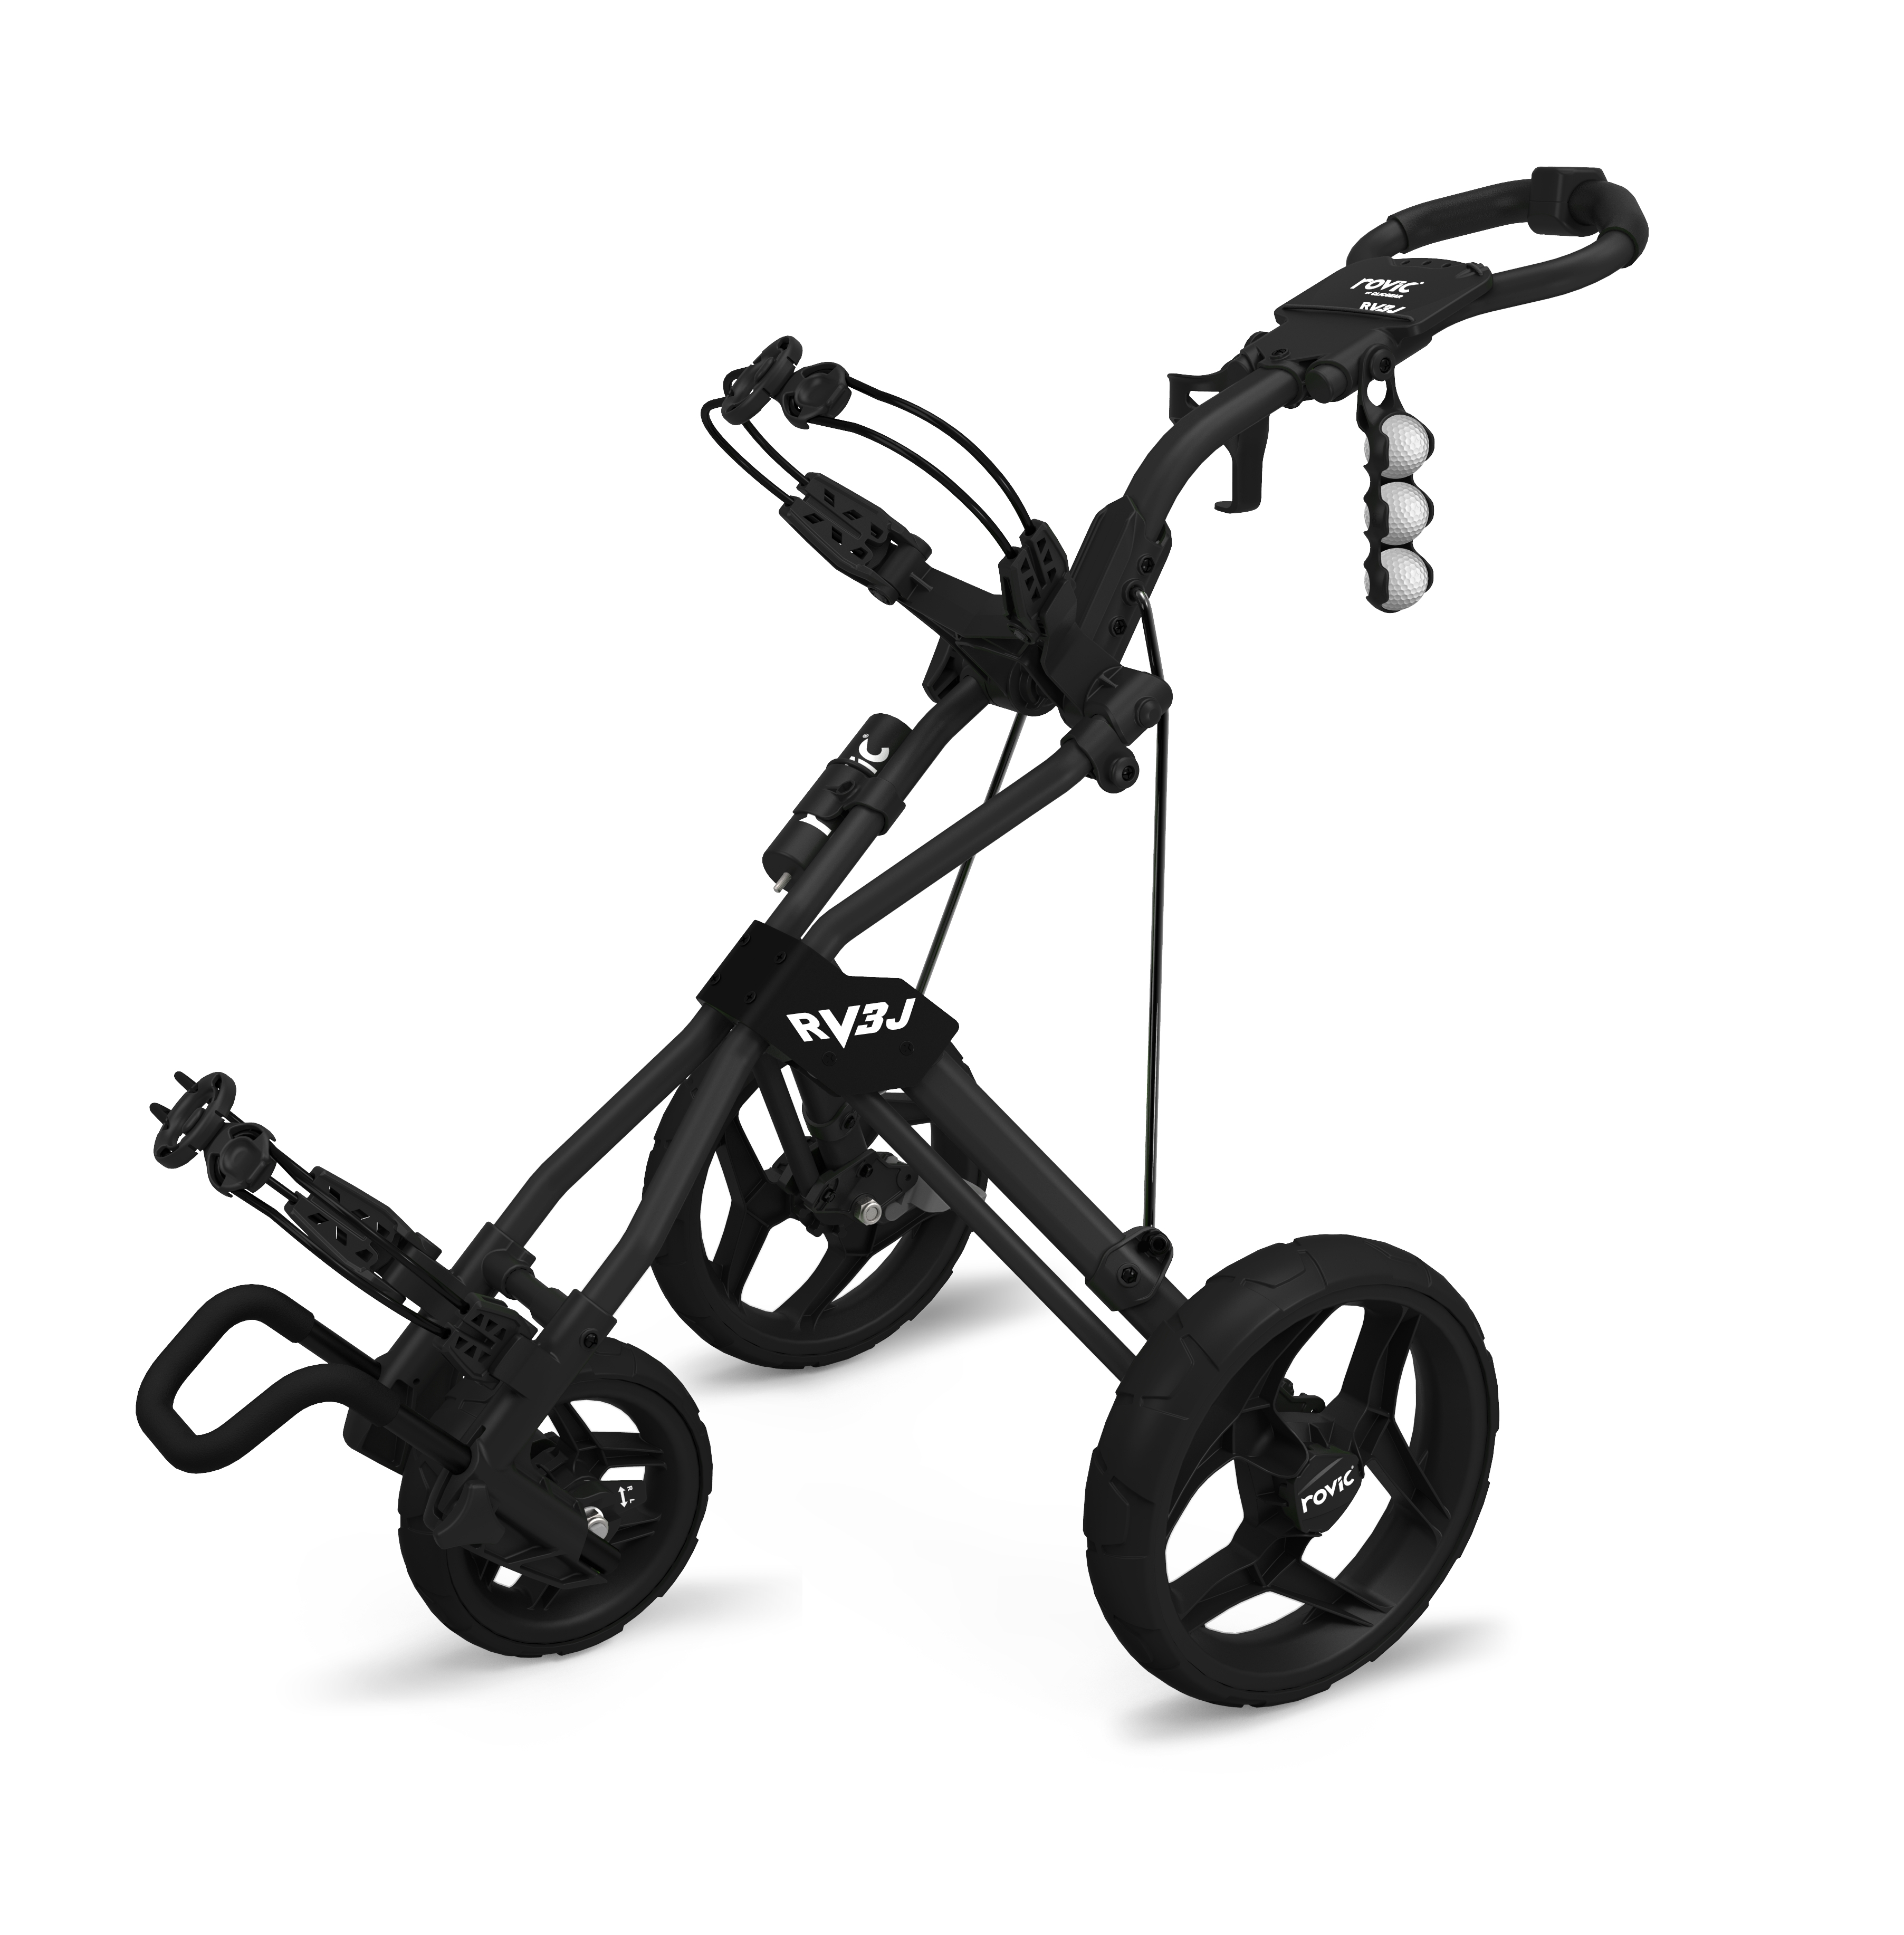 Rovic by Clicgear RV3J Junior 3-Wheel Golf Push Cart, Charcoal Black